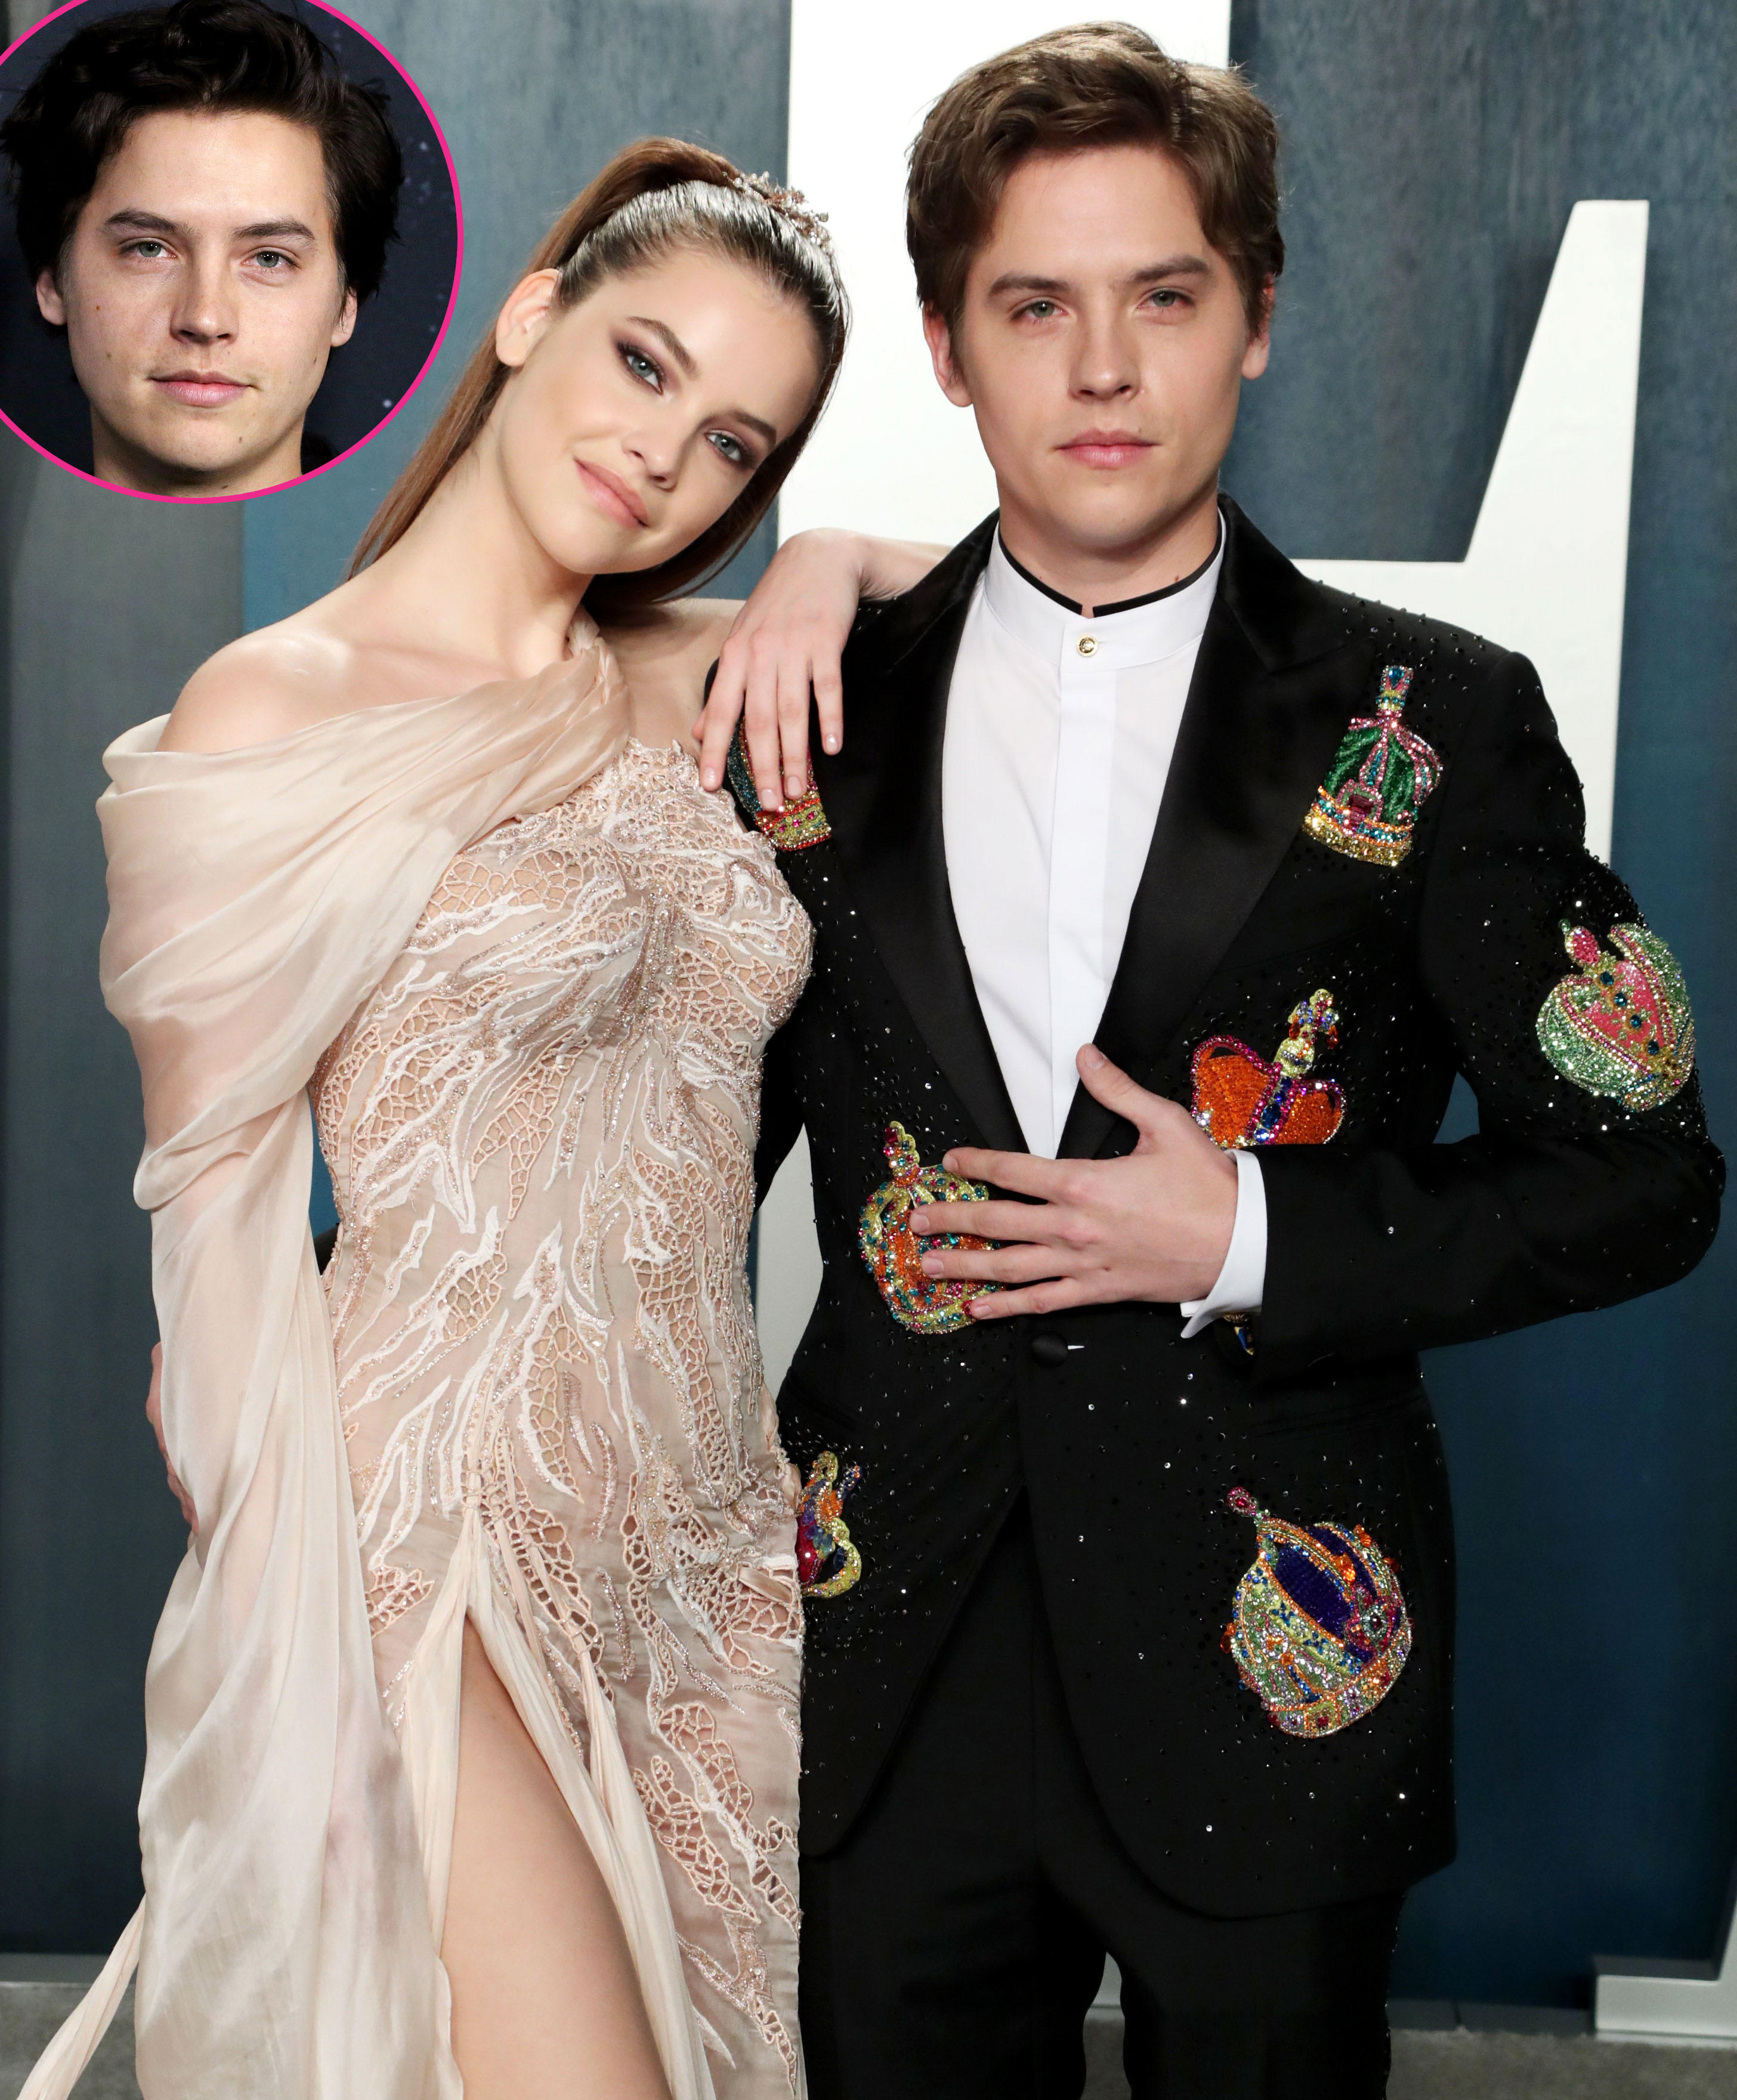 Who is dylan sprouse dating right now the computer must be restarted before updating